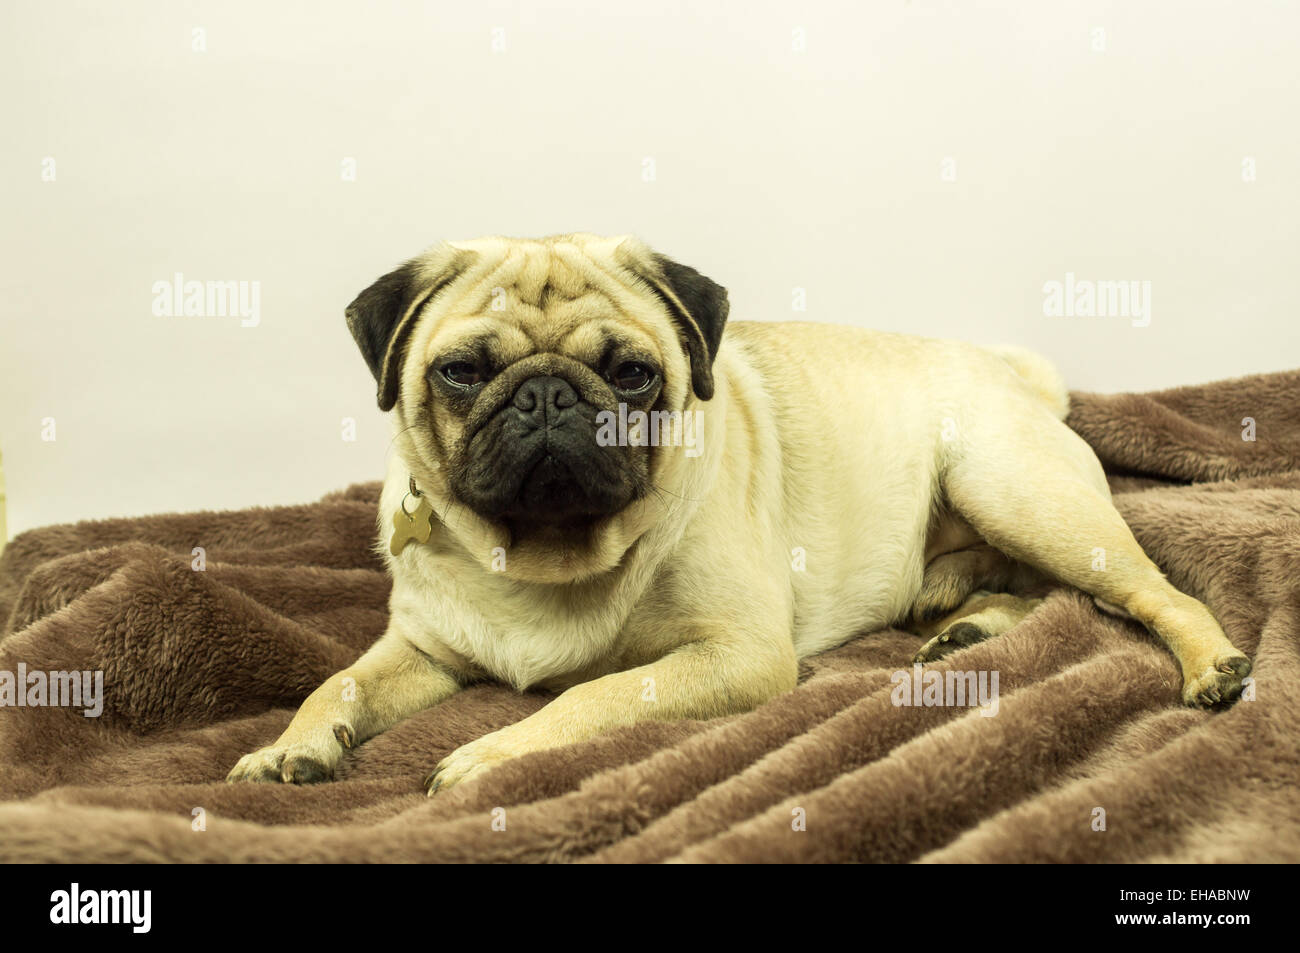 A pug dog on a brown throw - Stock Image